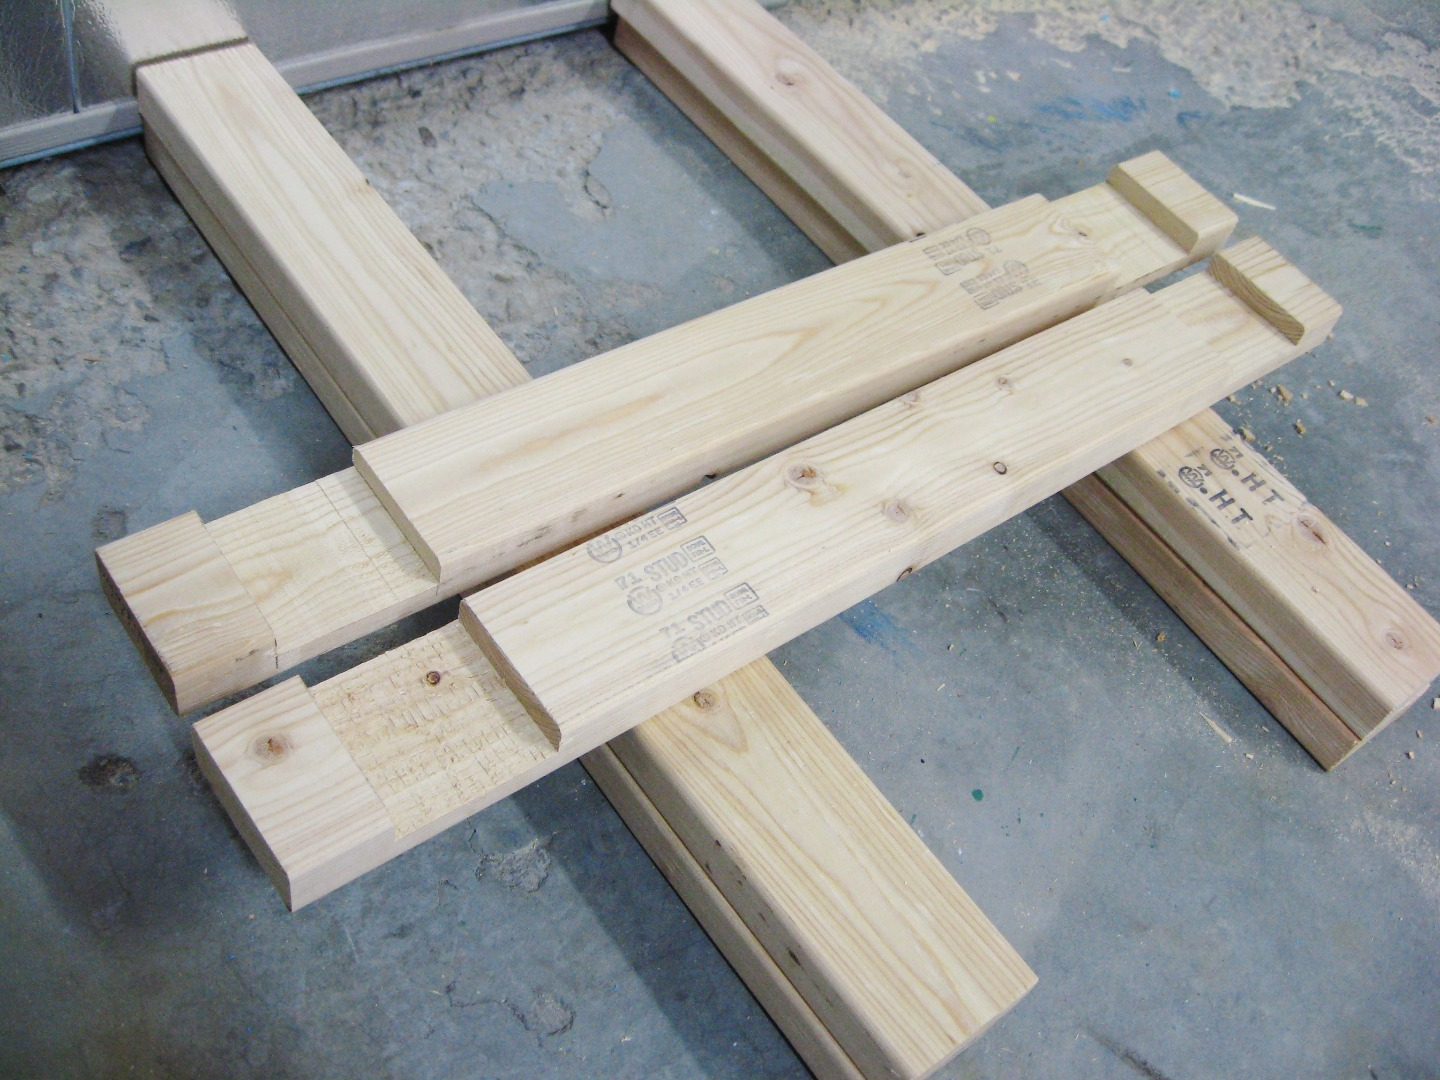 Picture of Cut Notches in Top Beam